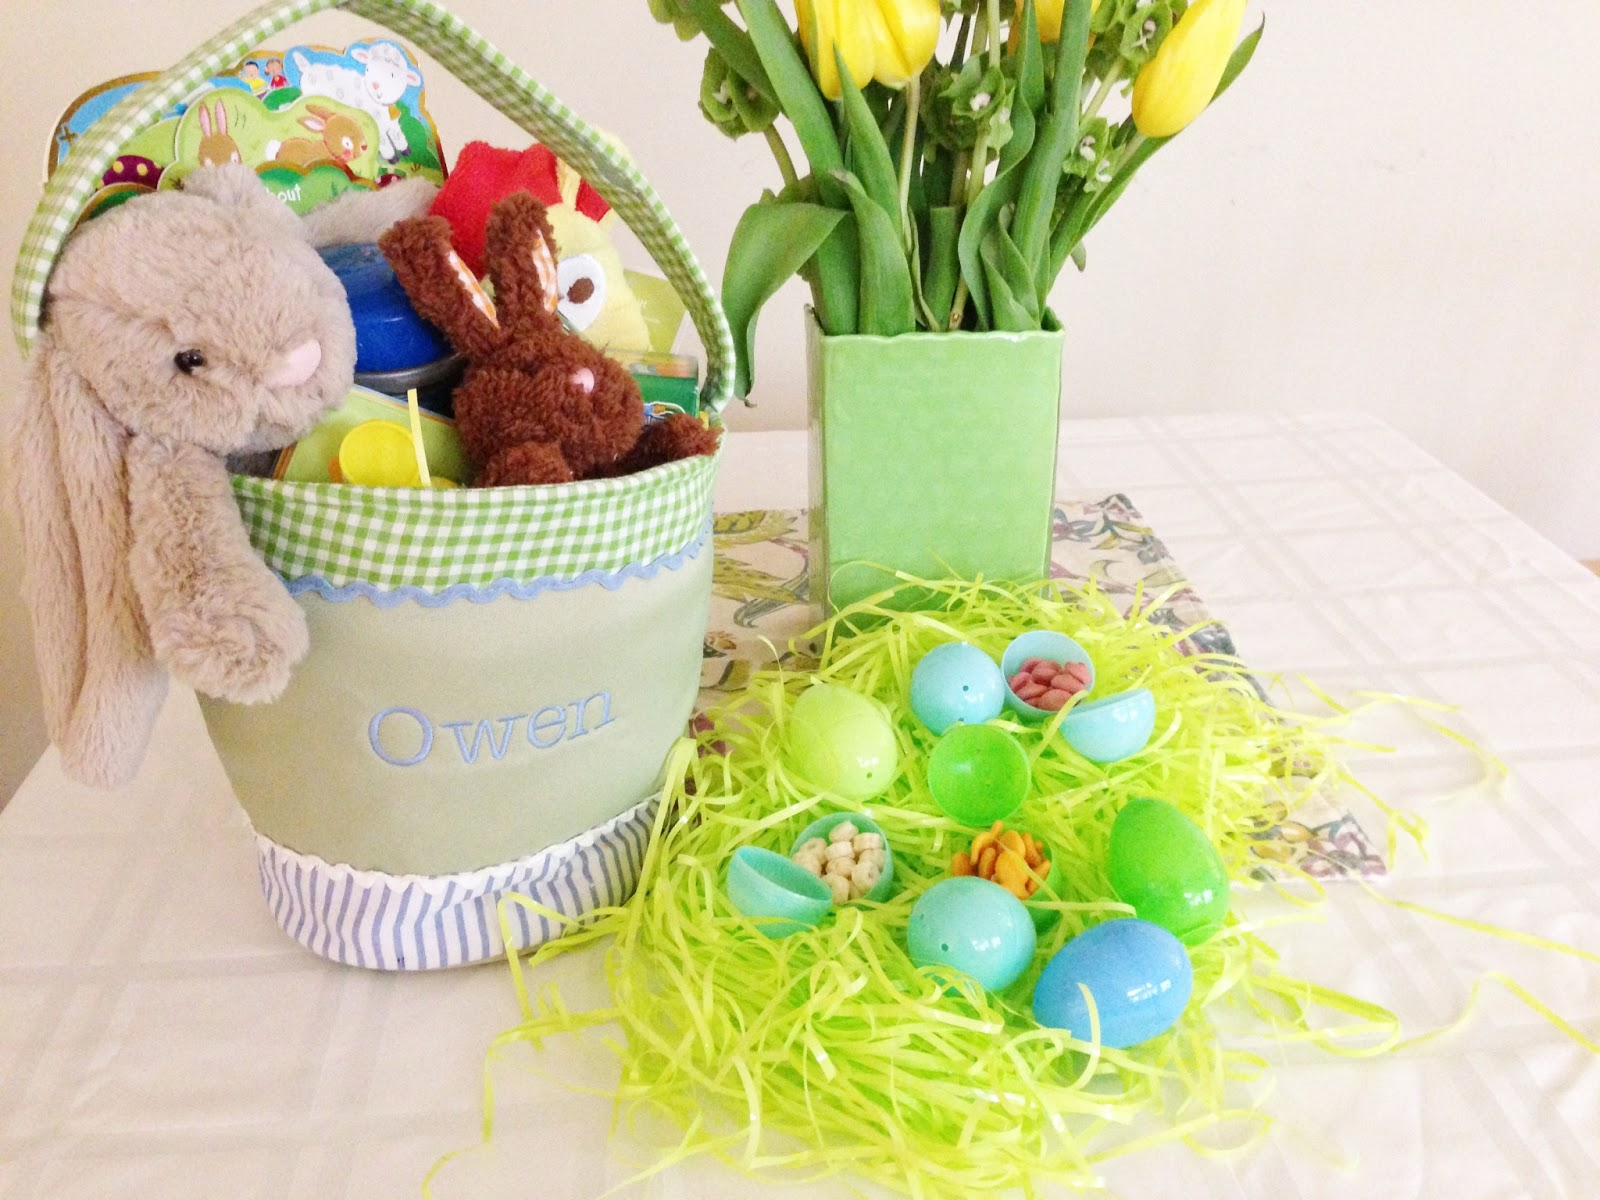 Meet the sullivans owens easter basket im going to order him a wicker basket personalized liner when they go on sale this year after easter so next year hell use this fabric one for easter negle Gallery